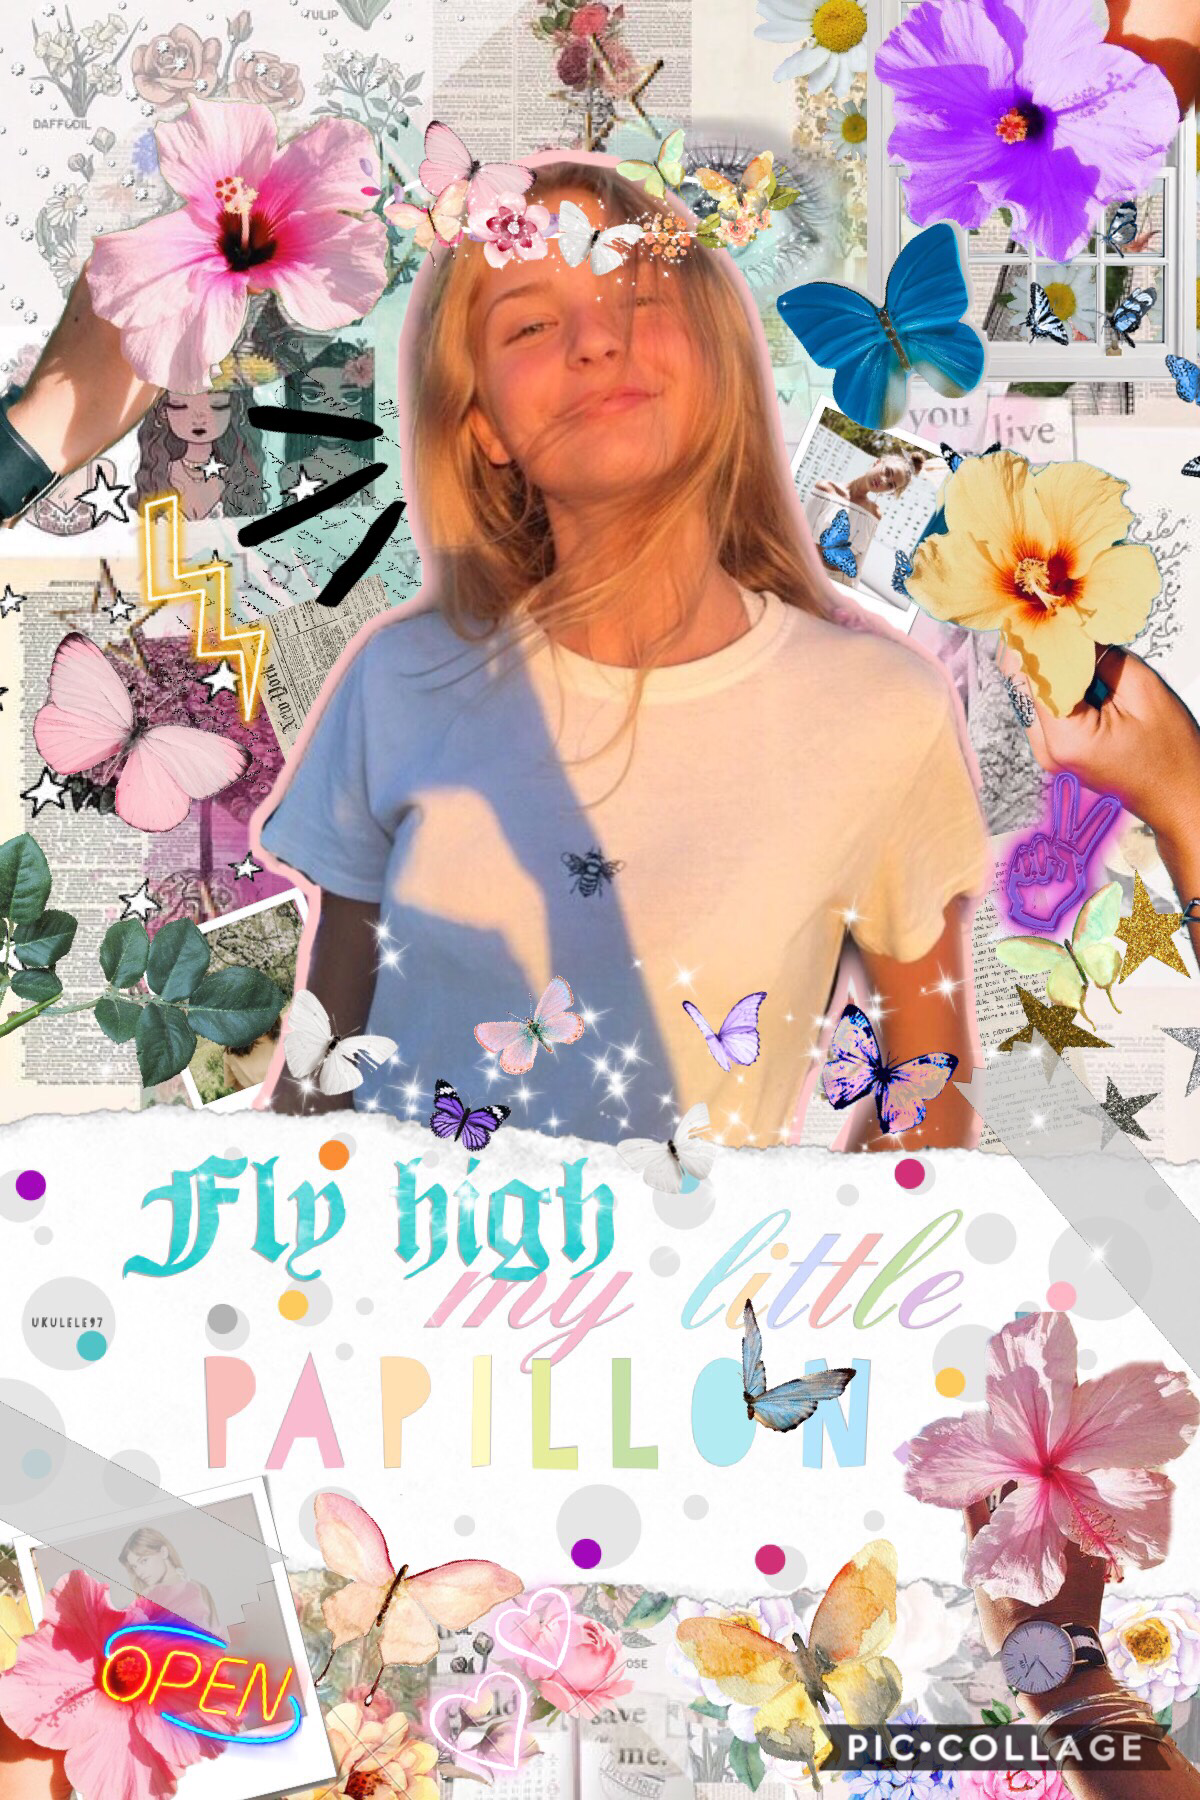 🦋✨Tappy✨🦋 2.24.19.  It's a messy collage but I feel like it's ok 👌🏼 papillon means butterfly 🦋 in French 🇫🇷 I hope you like dis ♥️ rate outa 10 ⭐️ QOTD: Have you ever caught a butterfly 🦋 before? AOTD: no ☹️ but at least I get to see them fly